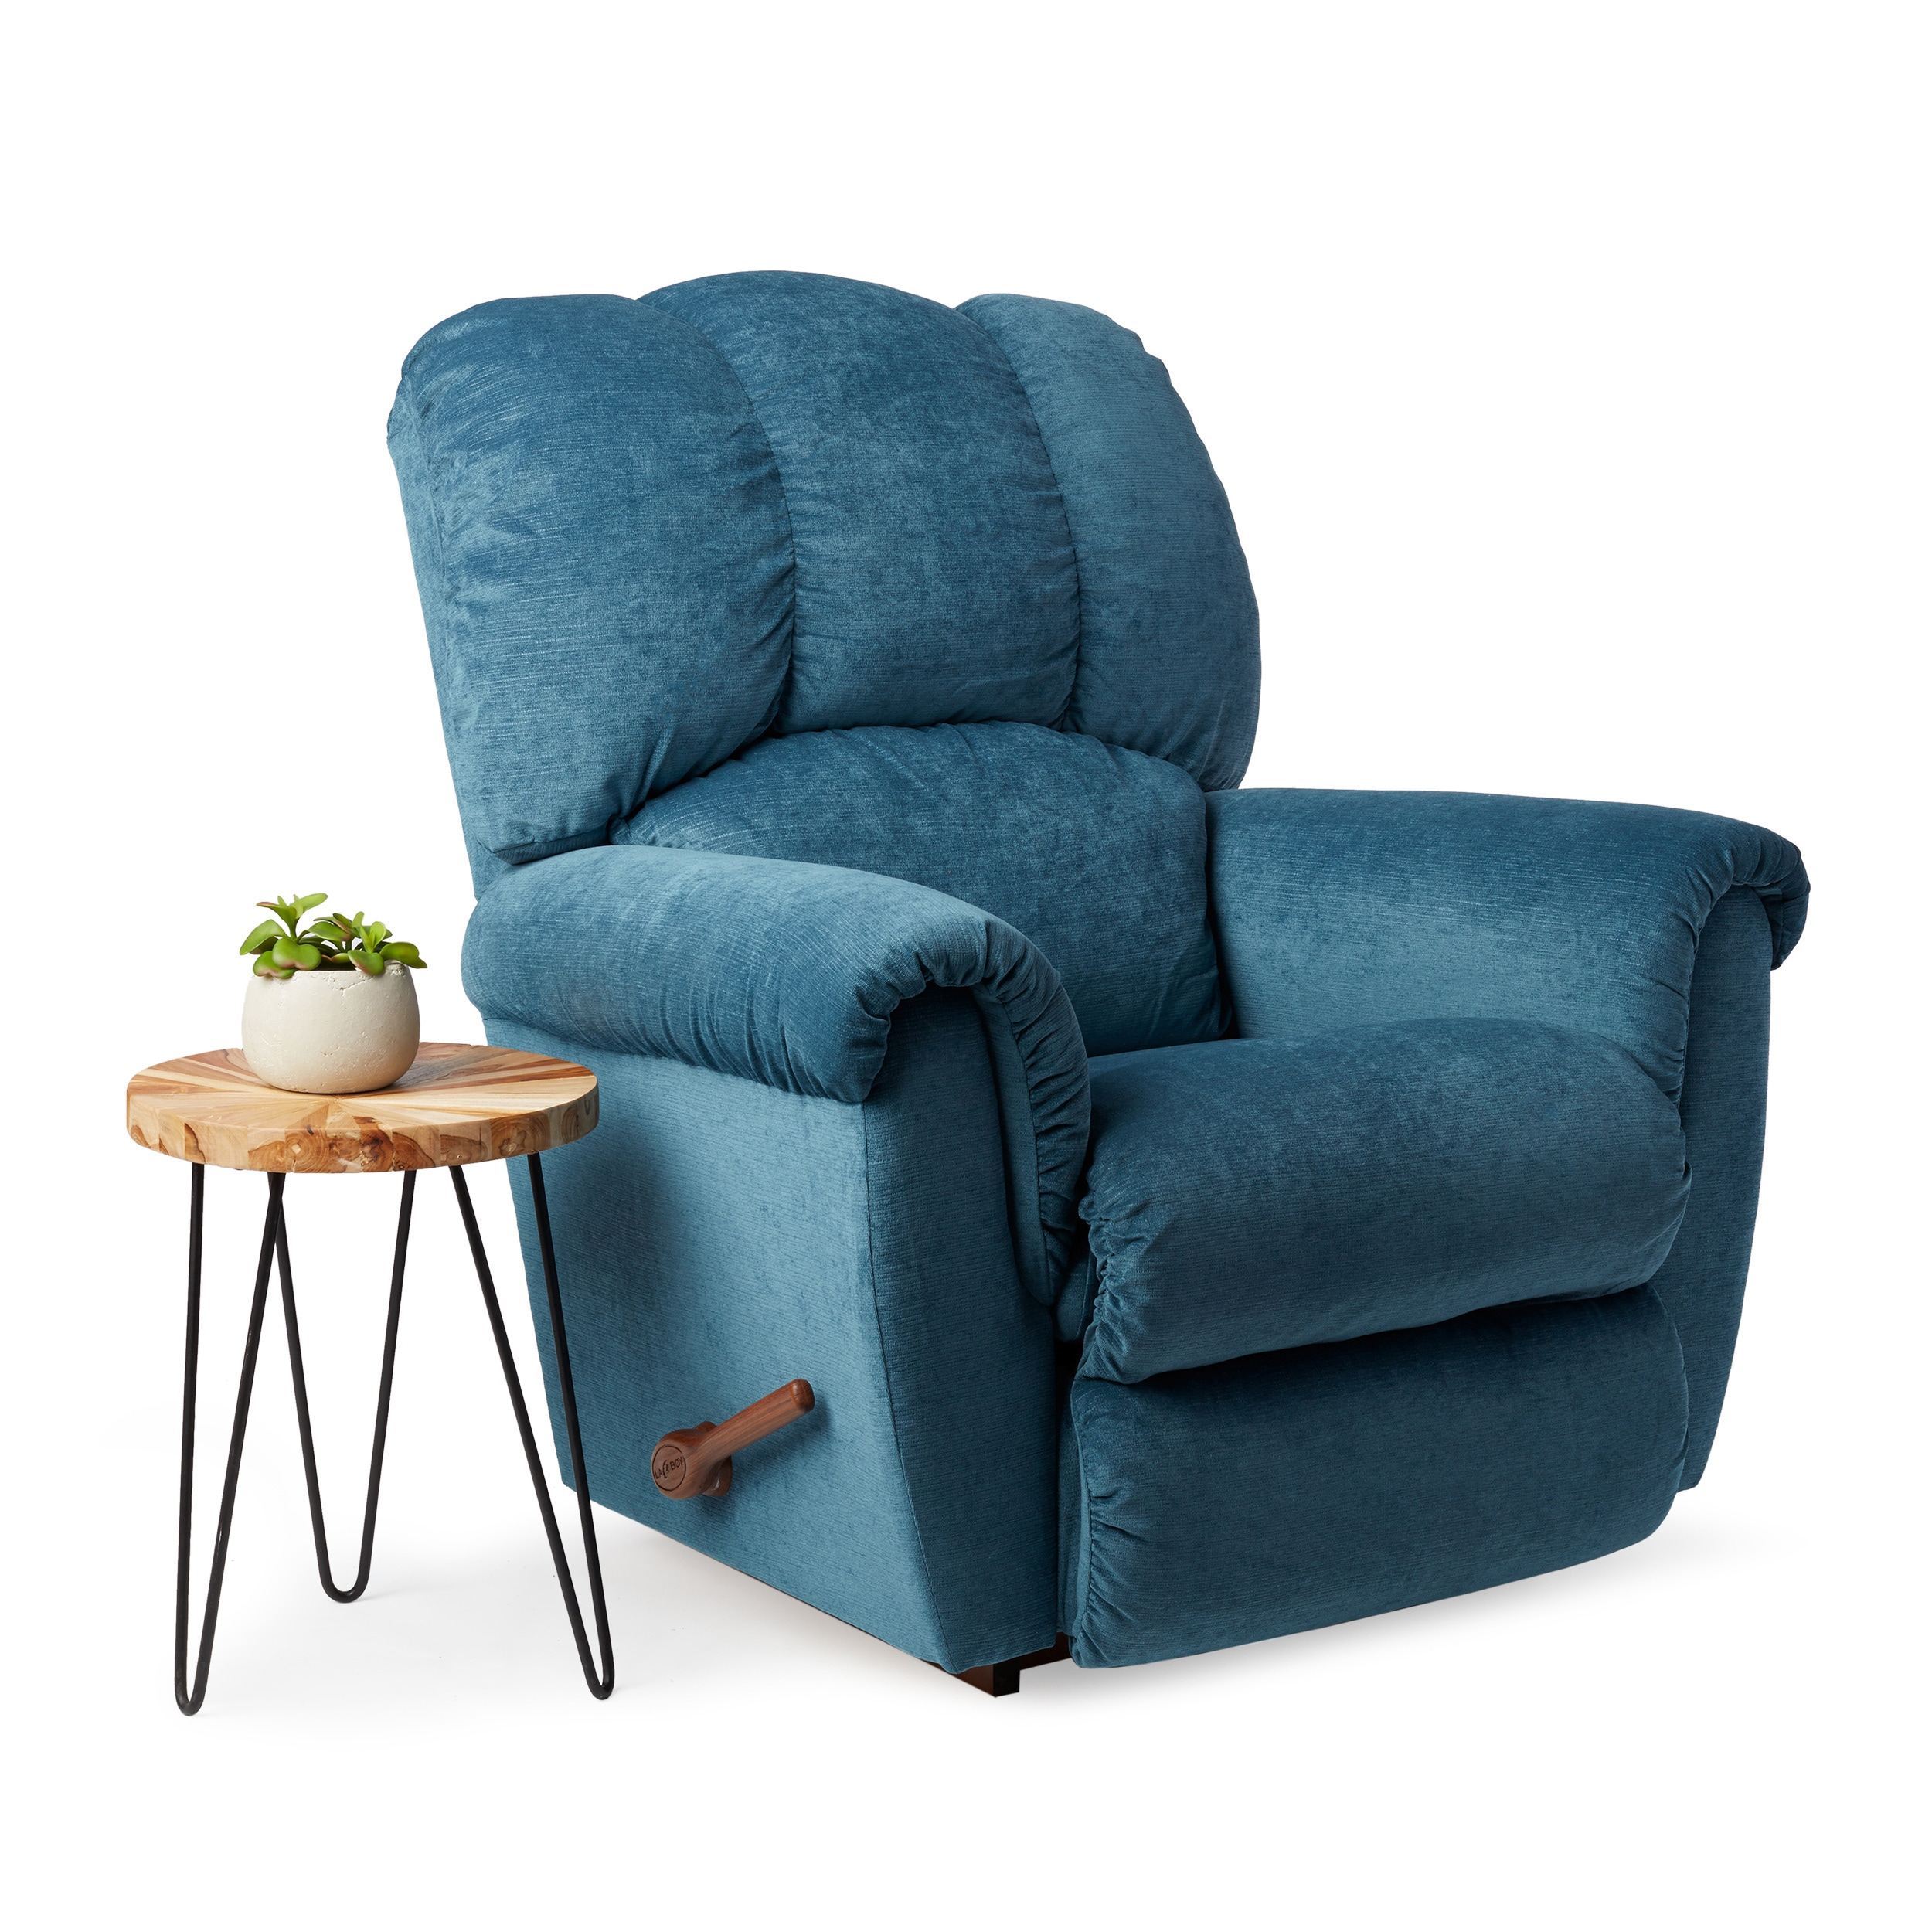 Shop La Z Boy Connor Teal Blue Recliner   Free Shipping Today    Overstock.com   13542354